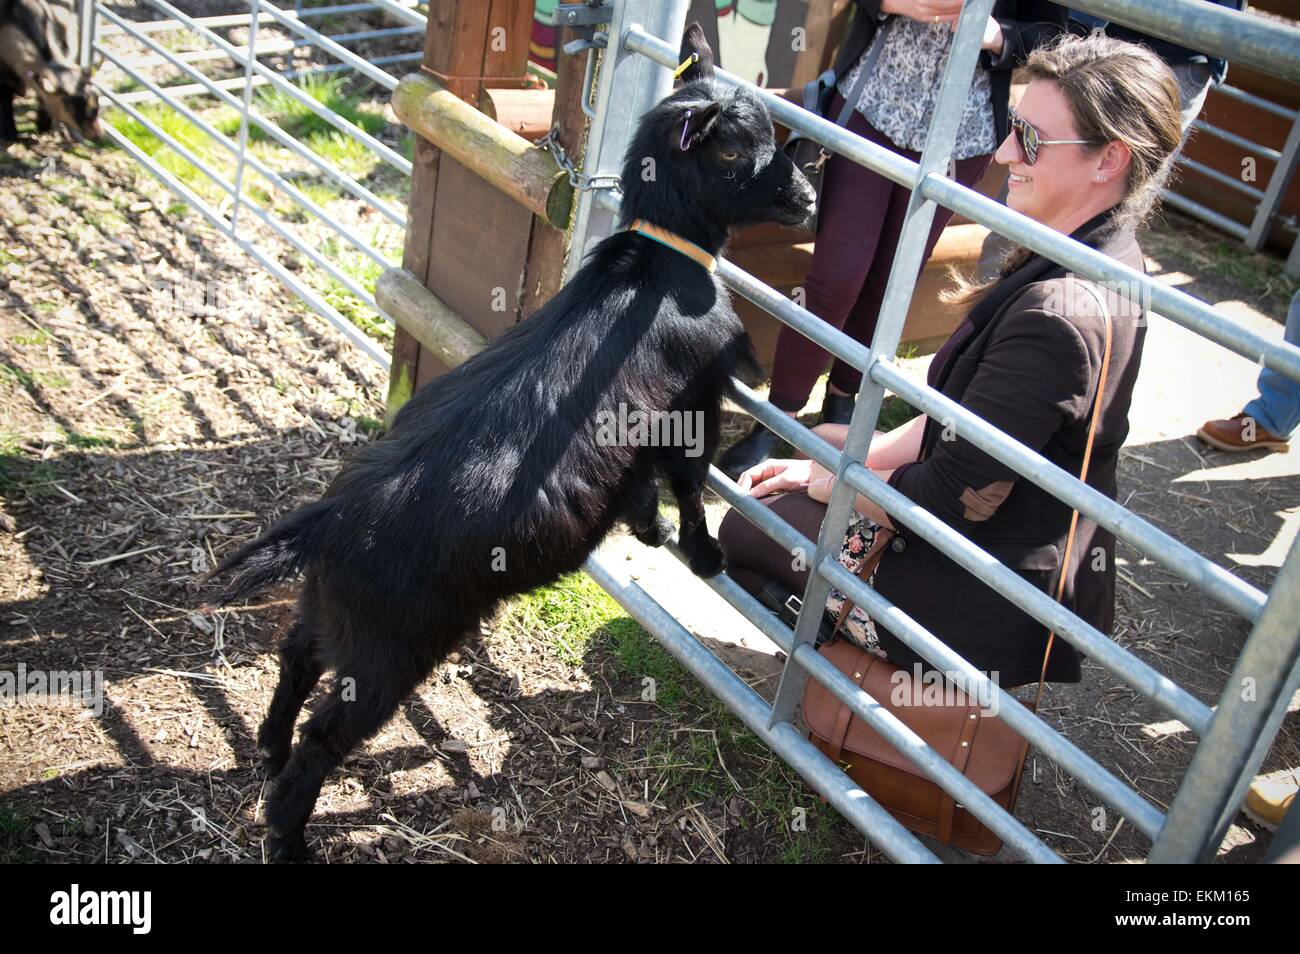 London, United Kingdom. 11th Apr, 2015. The racing goat 'Oxford' seen interacting with people before the - Stock Image